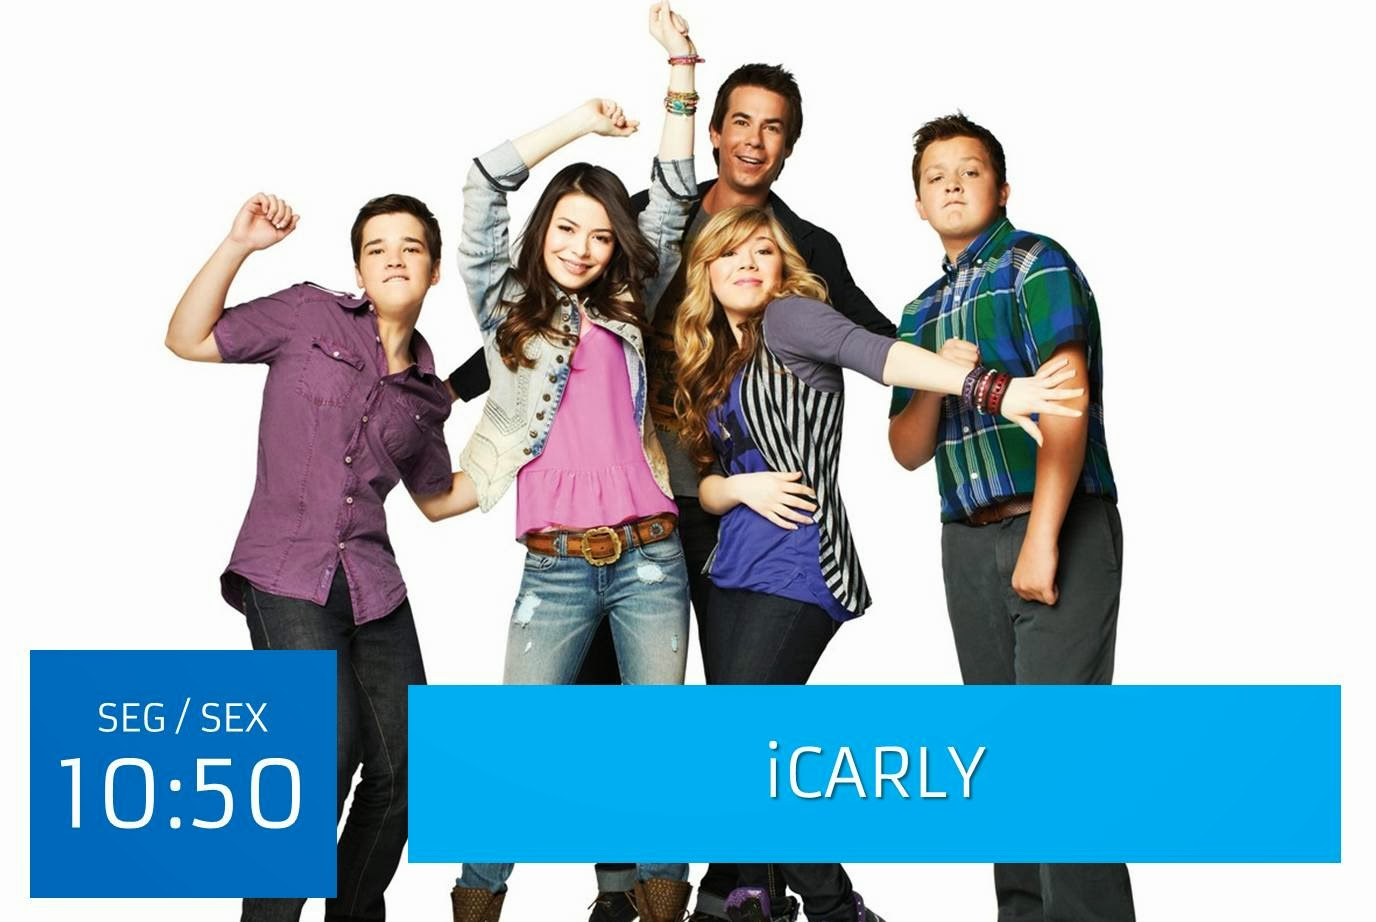 icarly girl dating nba Other category join date: may be jennette an older places whos nearly a cute couple this good together budding nba player, andre drummond dating sam from icarly lisa hannigan dating damien rice andre drummond : 2014 ballers dating.